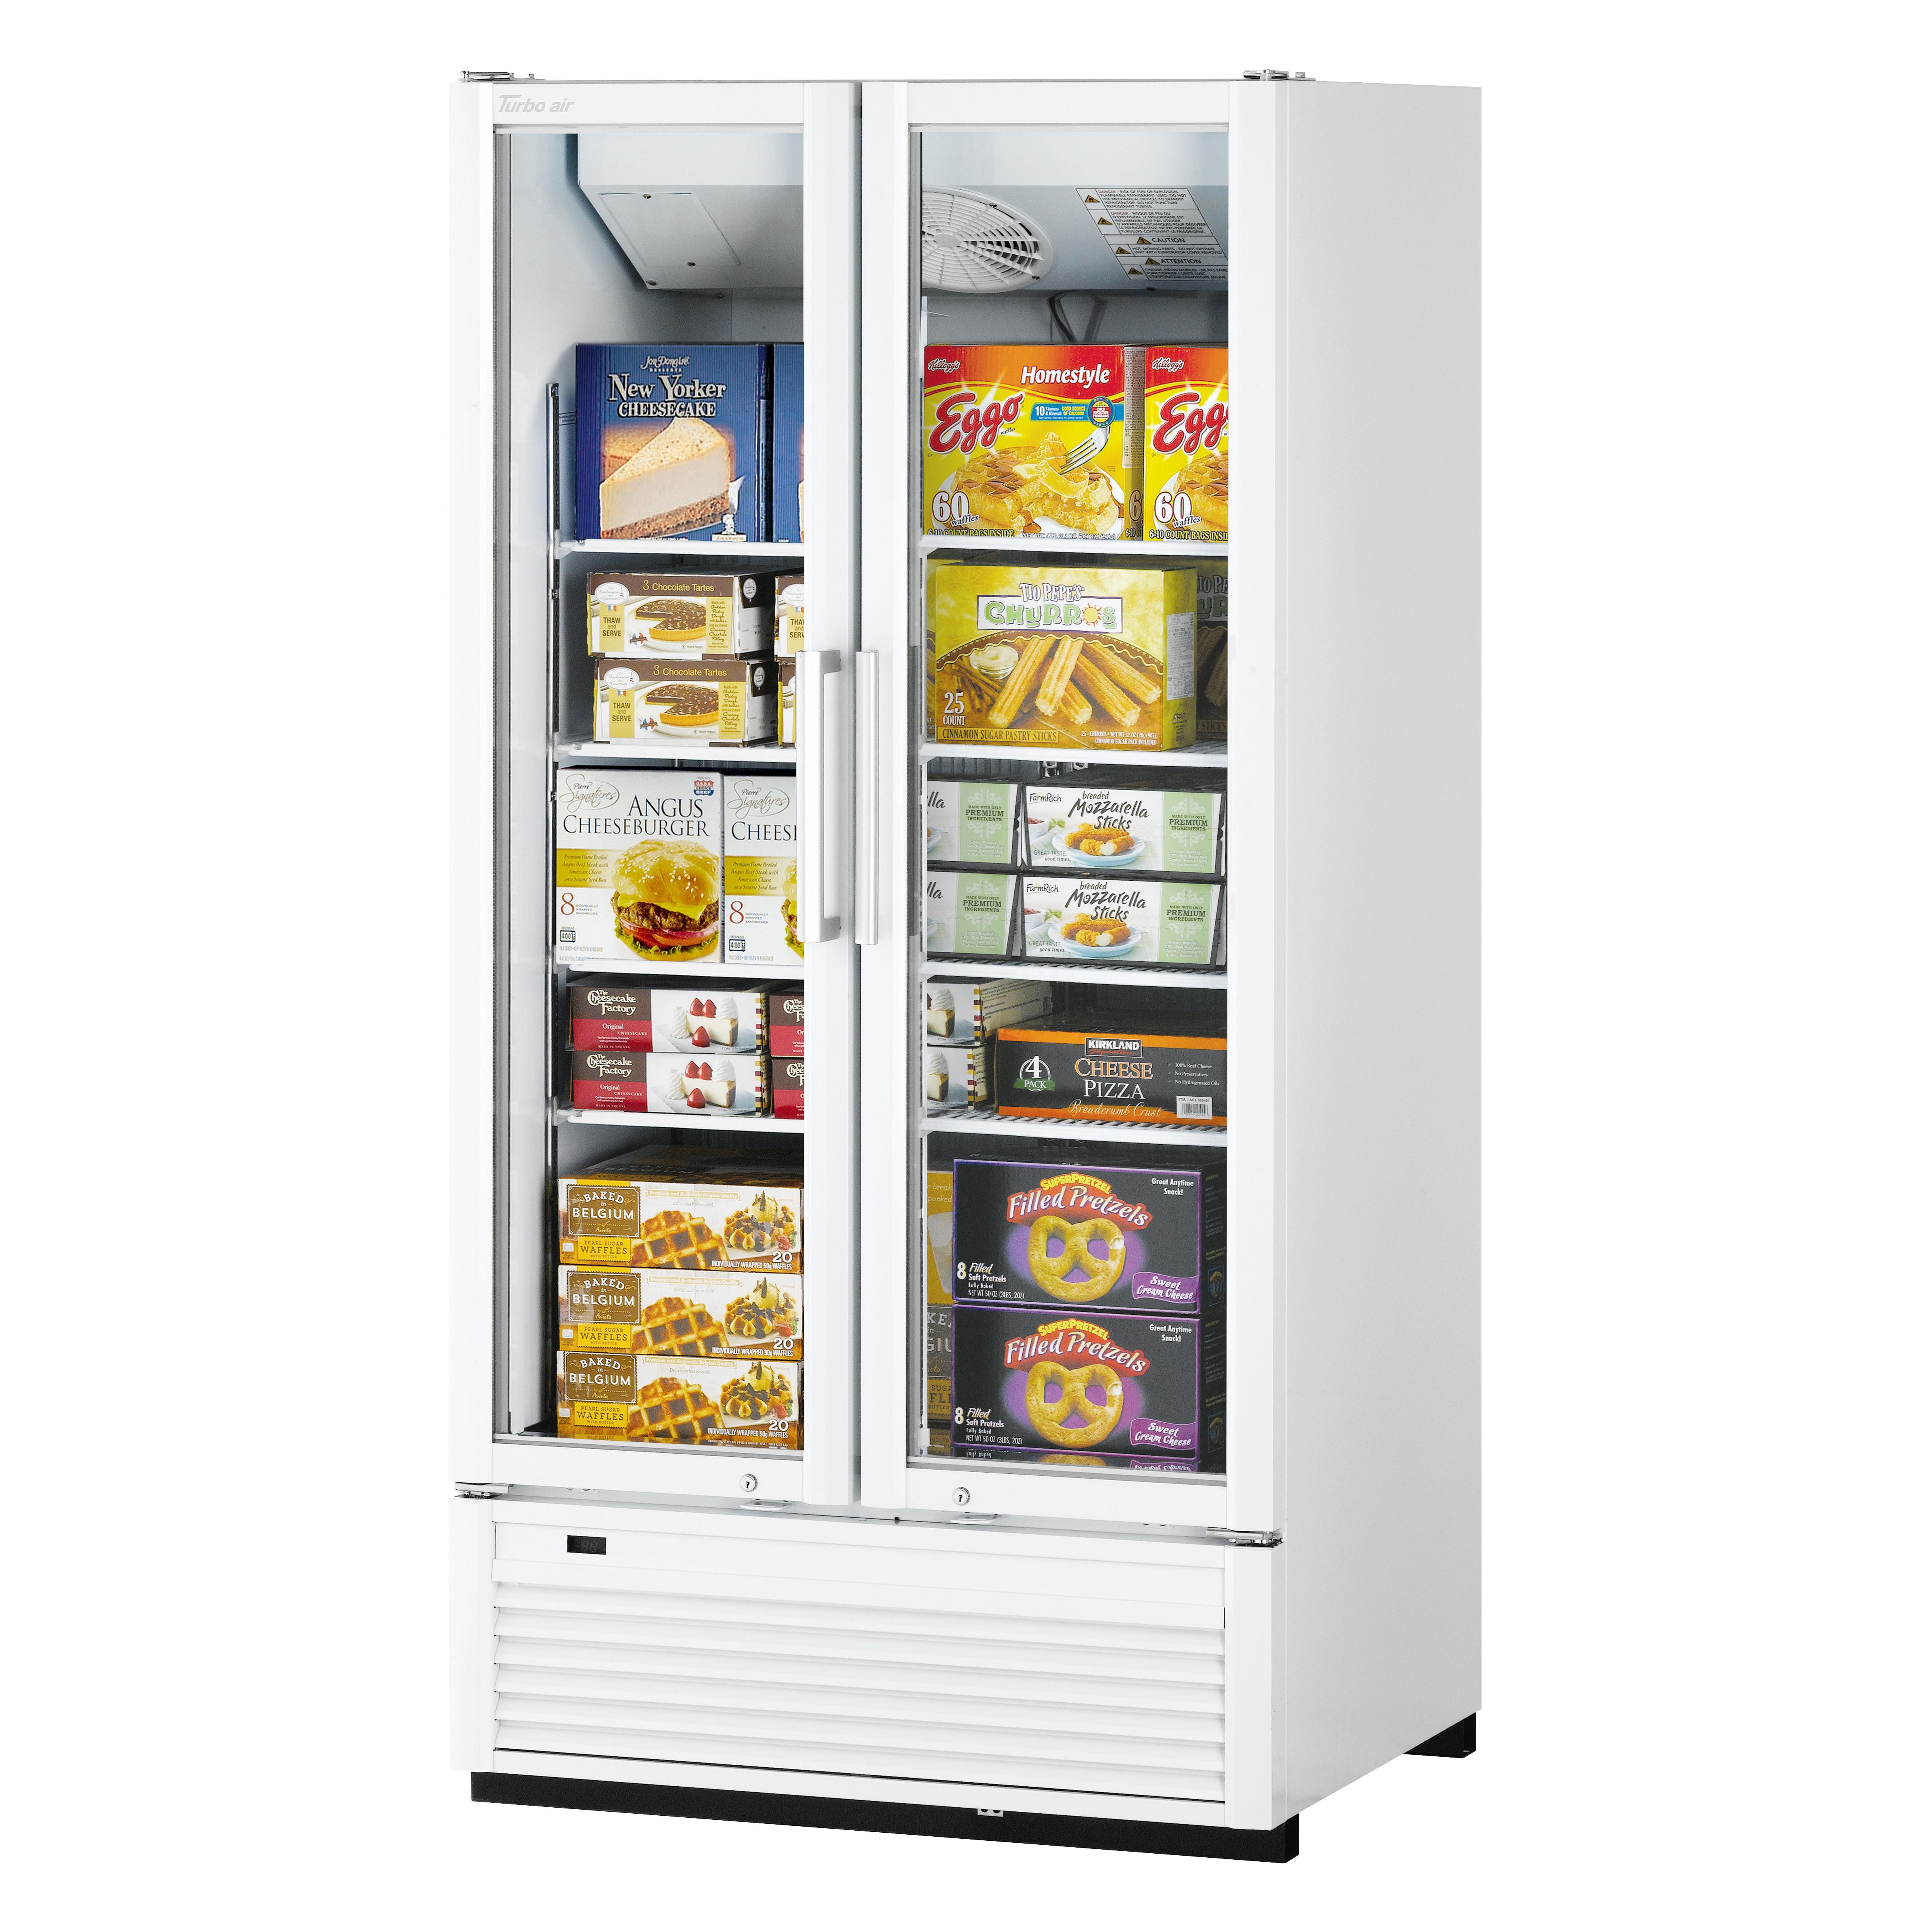 Turbo Air TGF-35SDH-N freezer, merchandiser